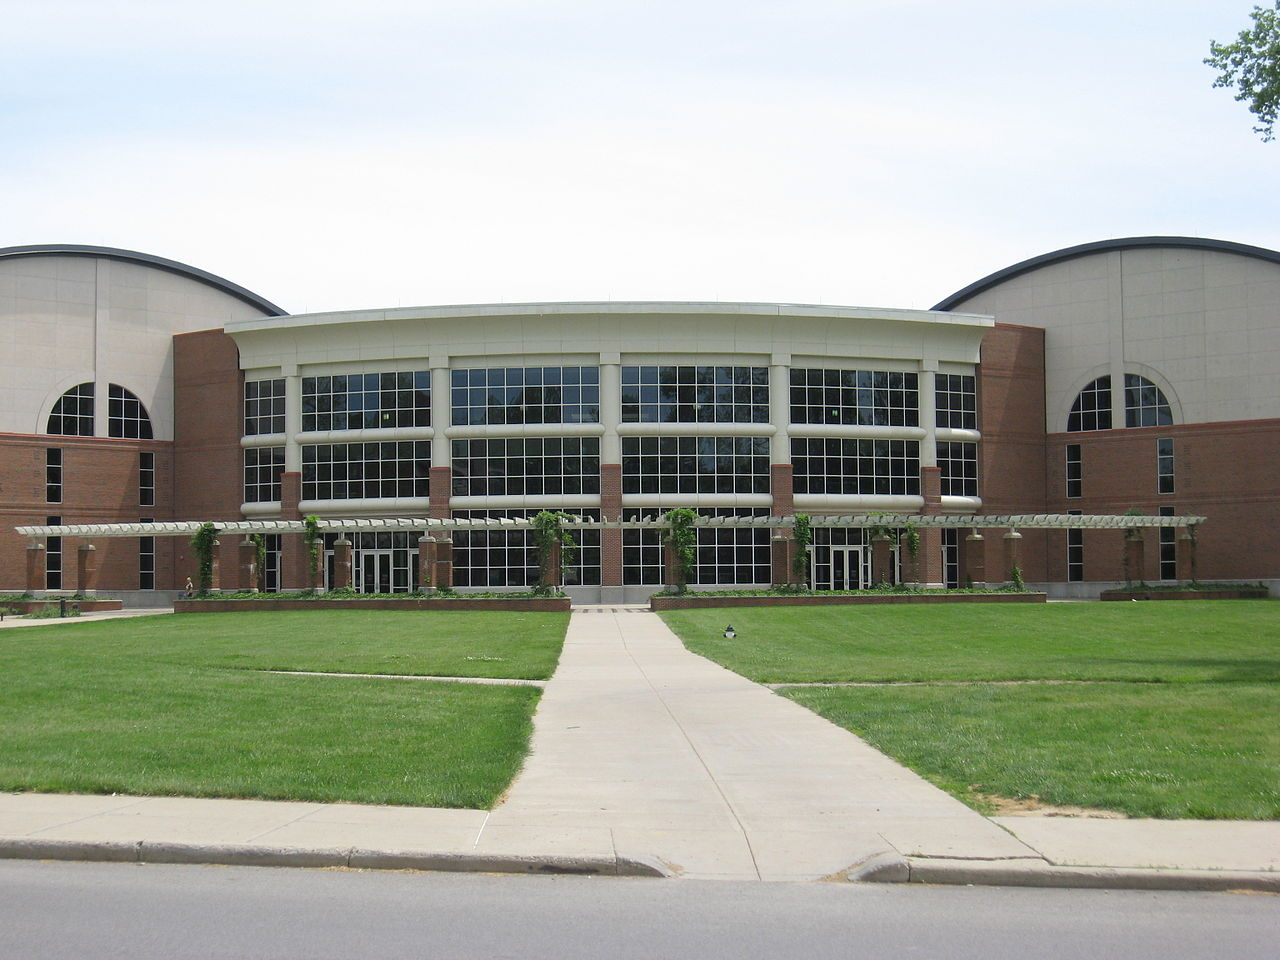 Ping Center at Ohio University - Courtesy Ed! via Wikimedia Commons